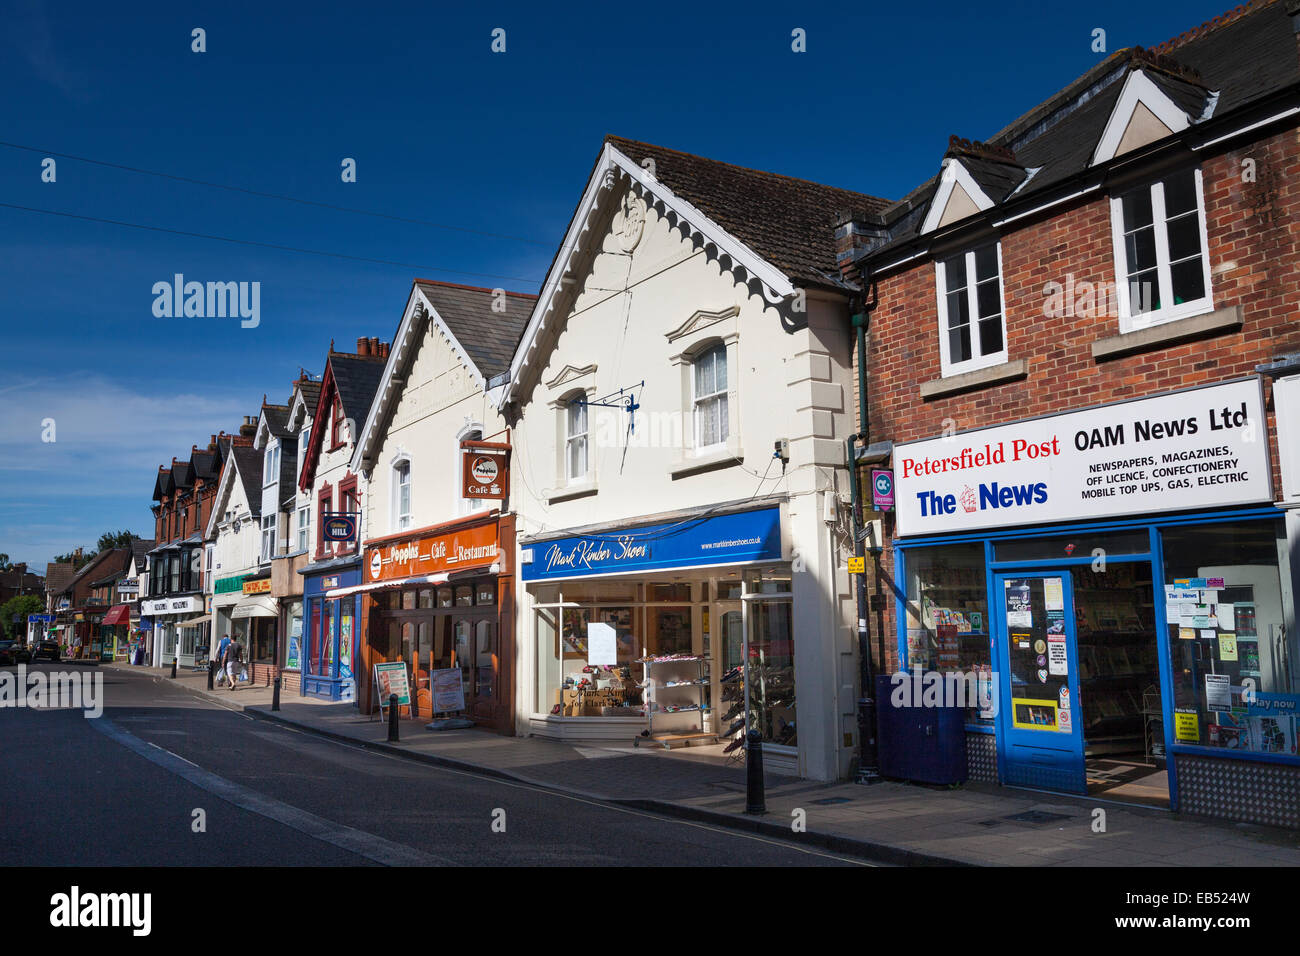 Small local shops in Chapel Street Petersfield Town Centre Stock Photo